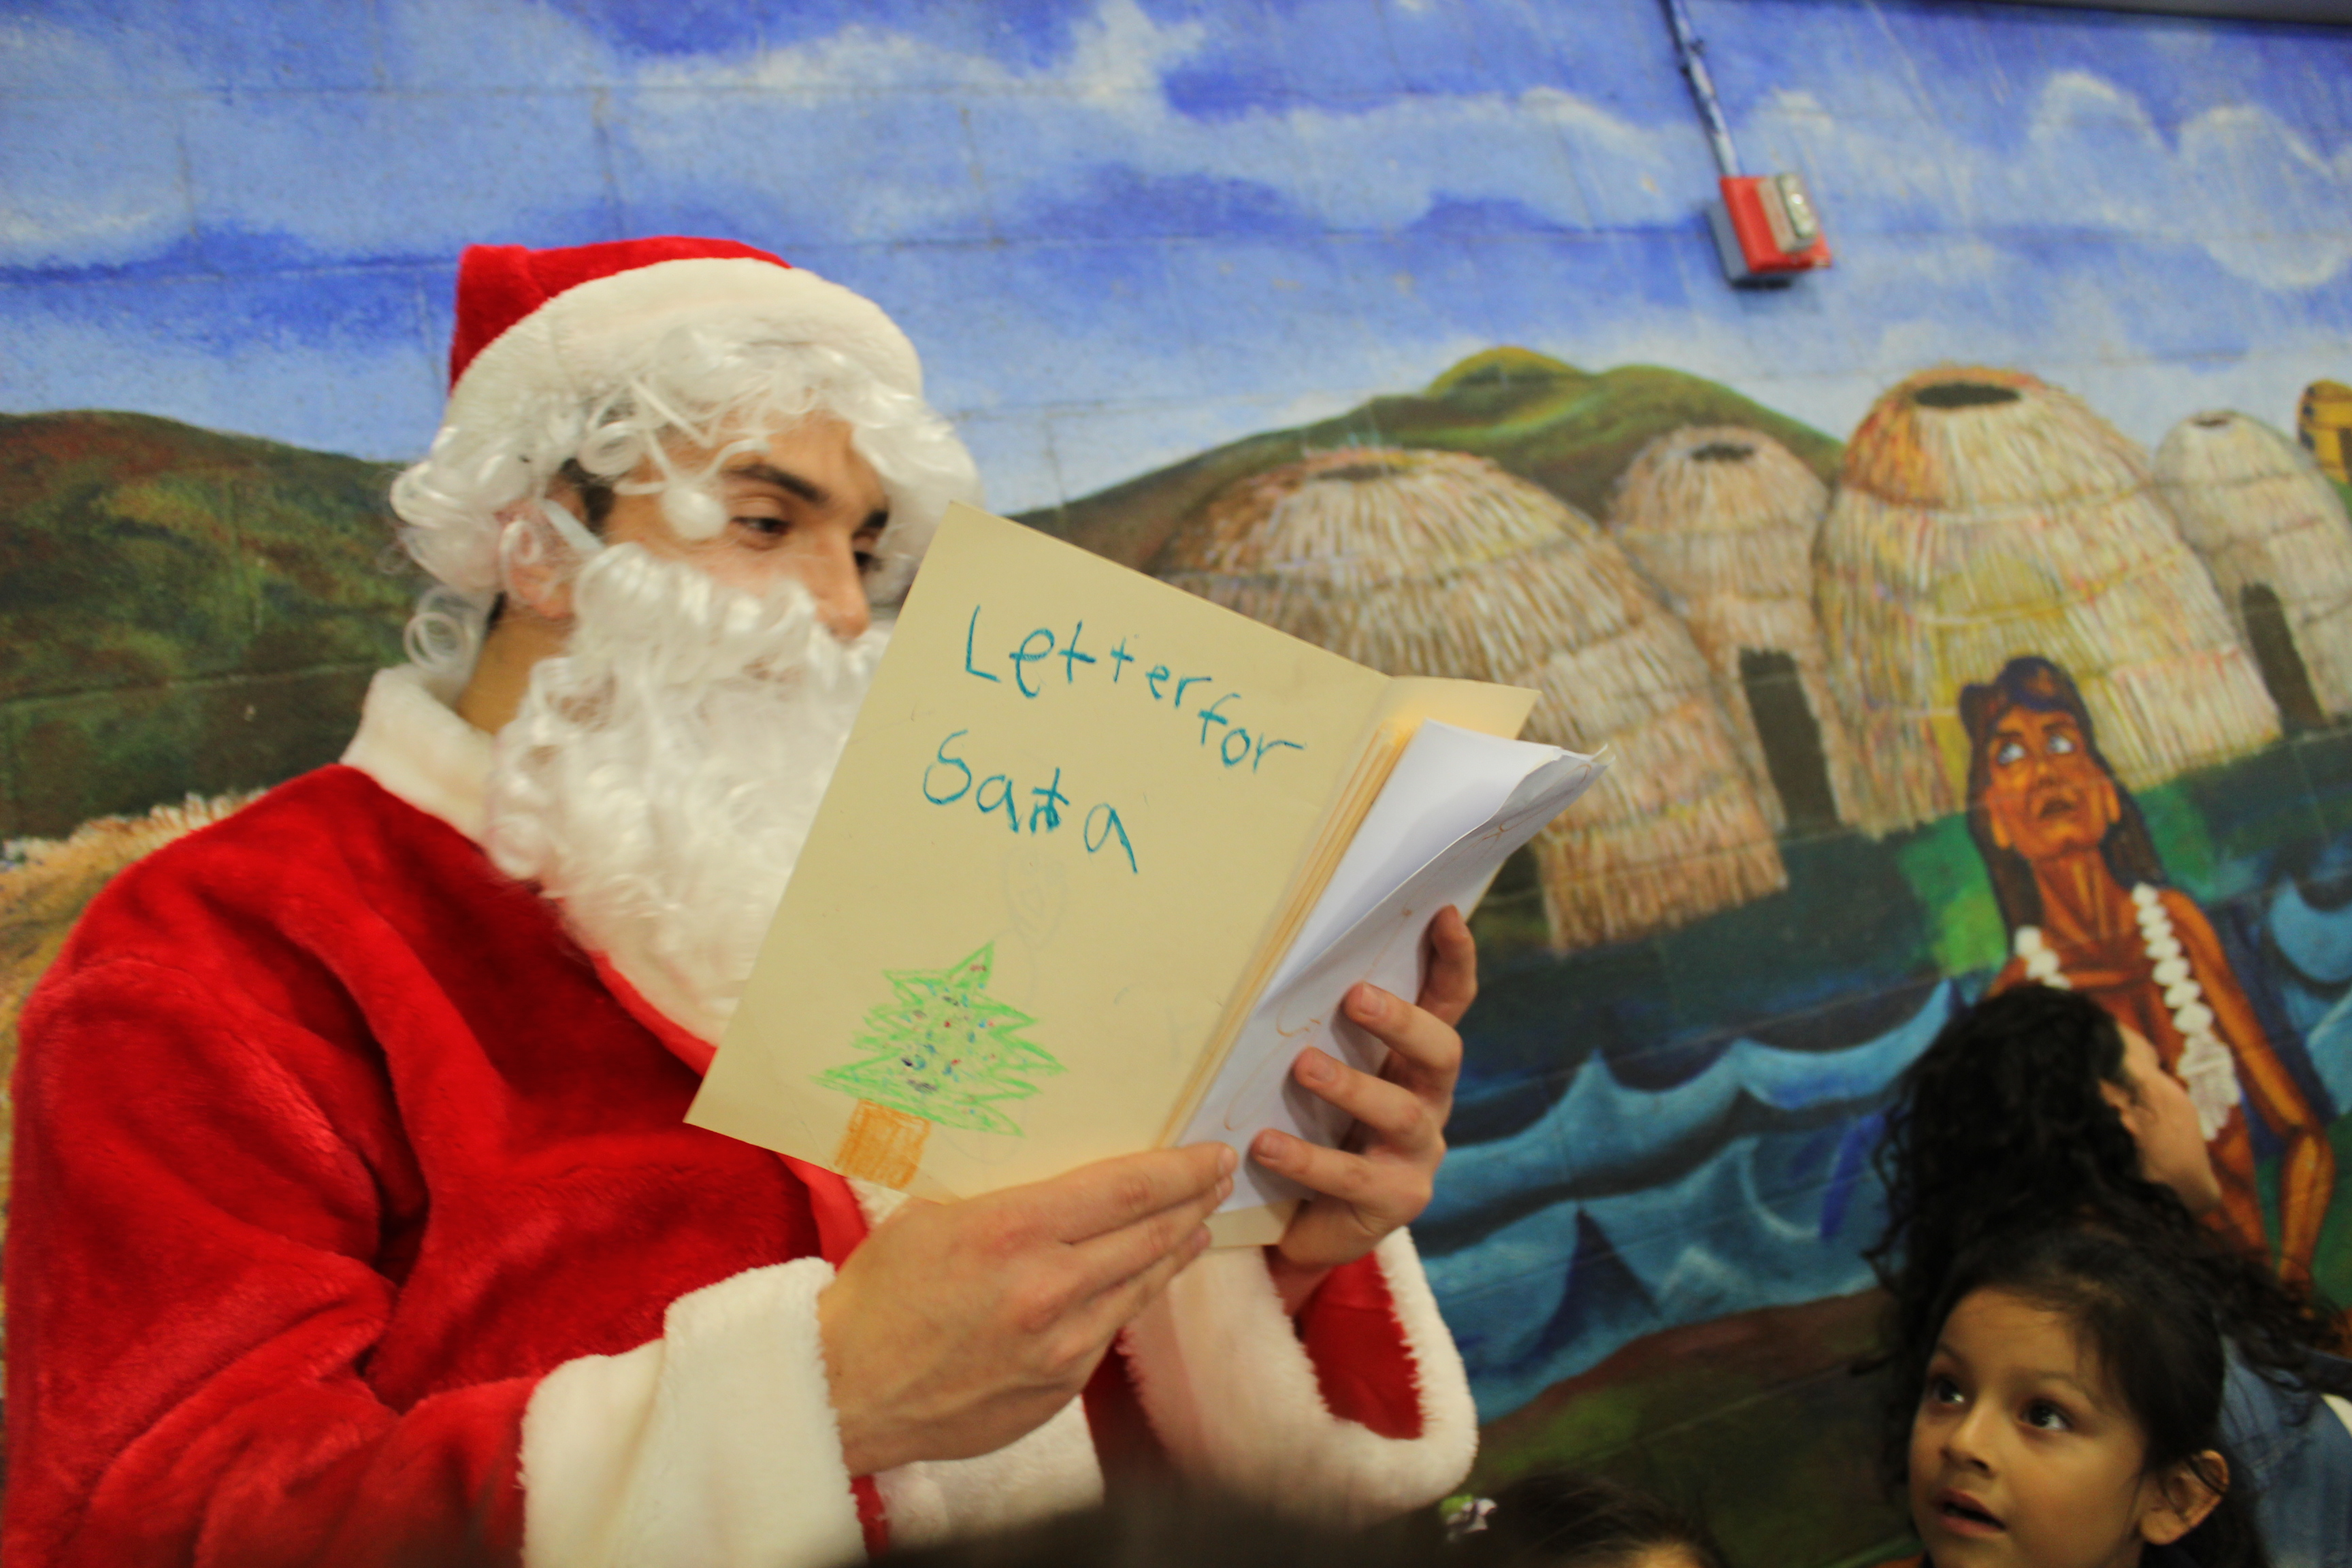 Hedvat reads aloud letters to Santa, written by Albion students, during lunc.